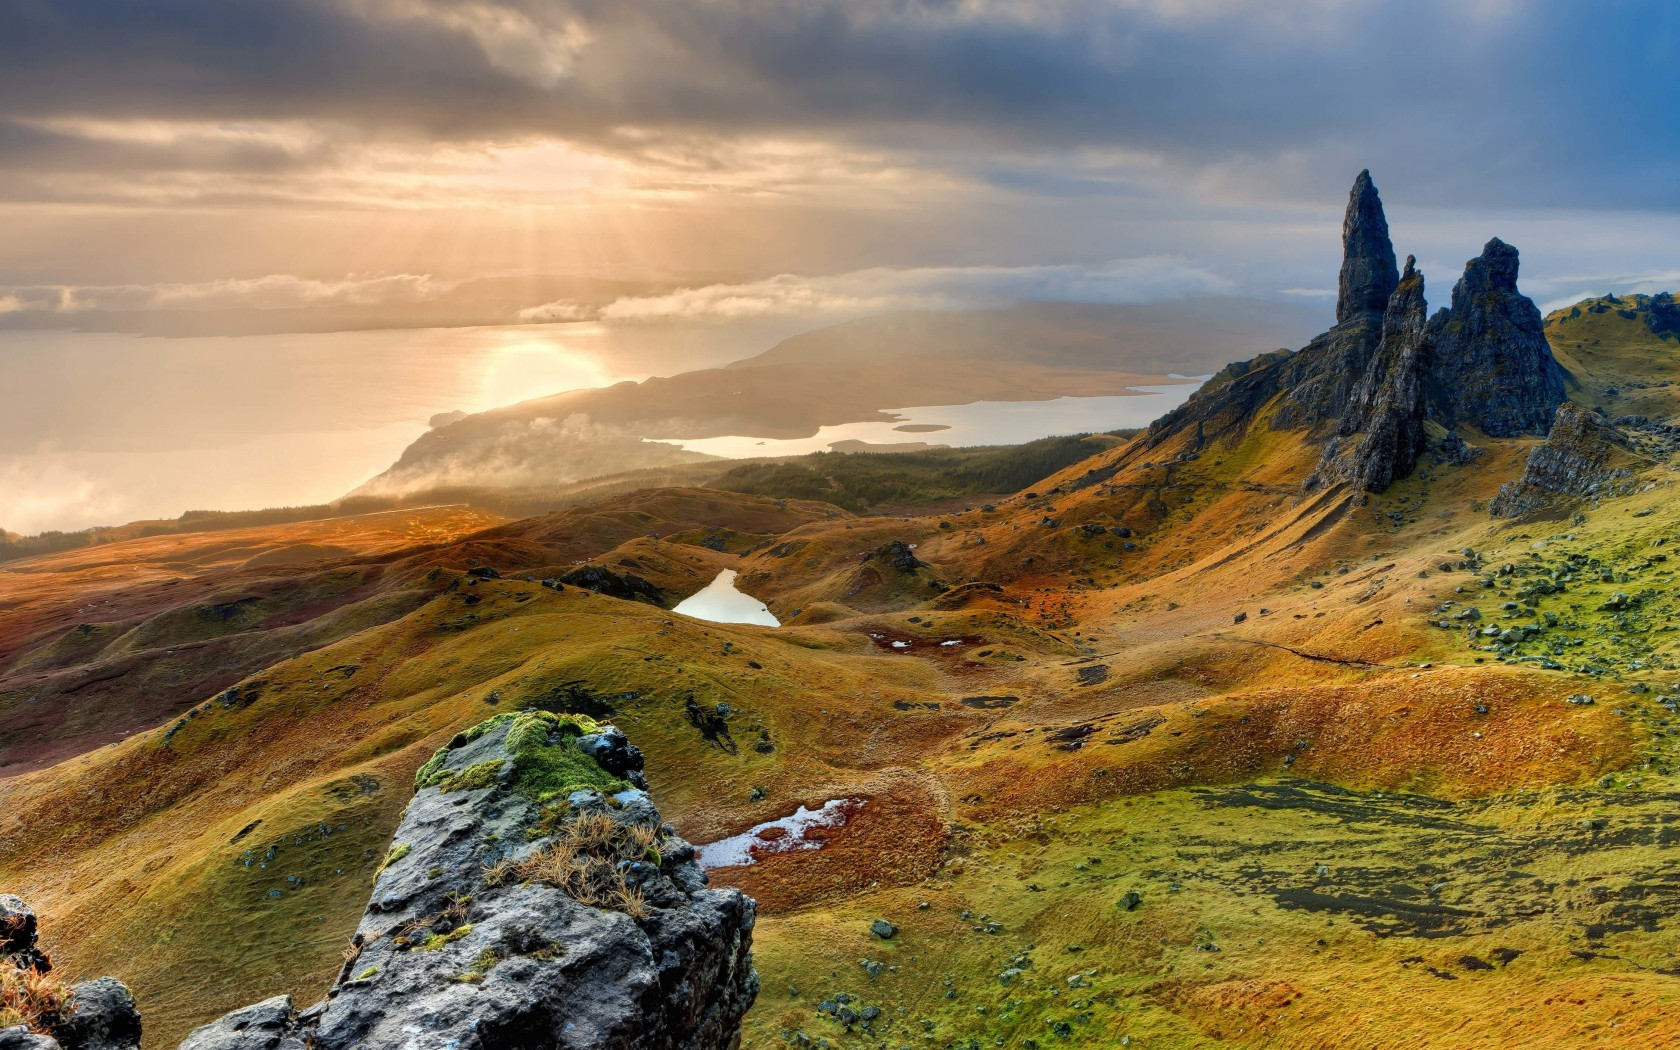 The Old Man of Storr, Isle of Skye, Scotland Wallpaper for Desktop 1680x1050